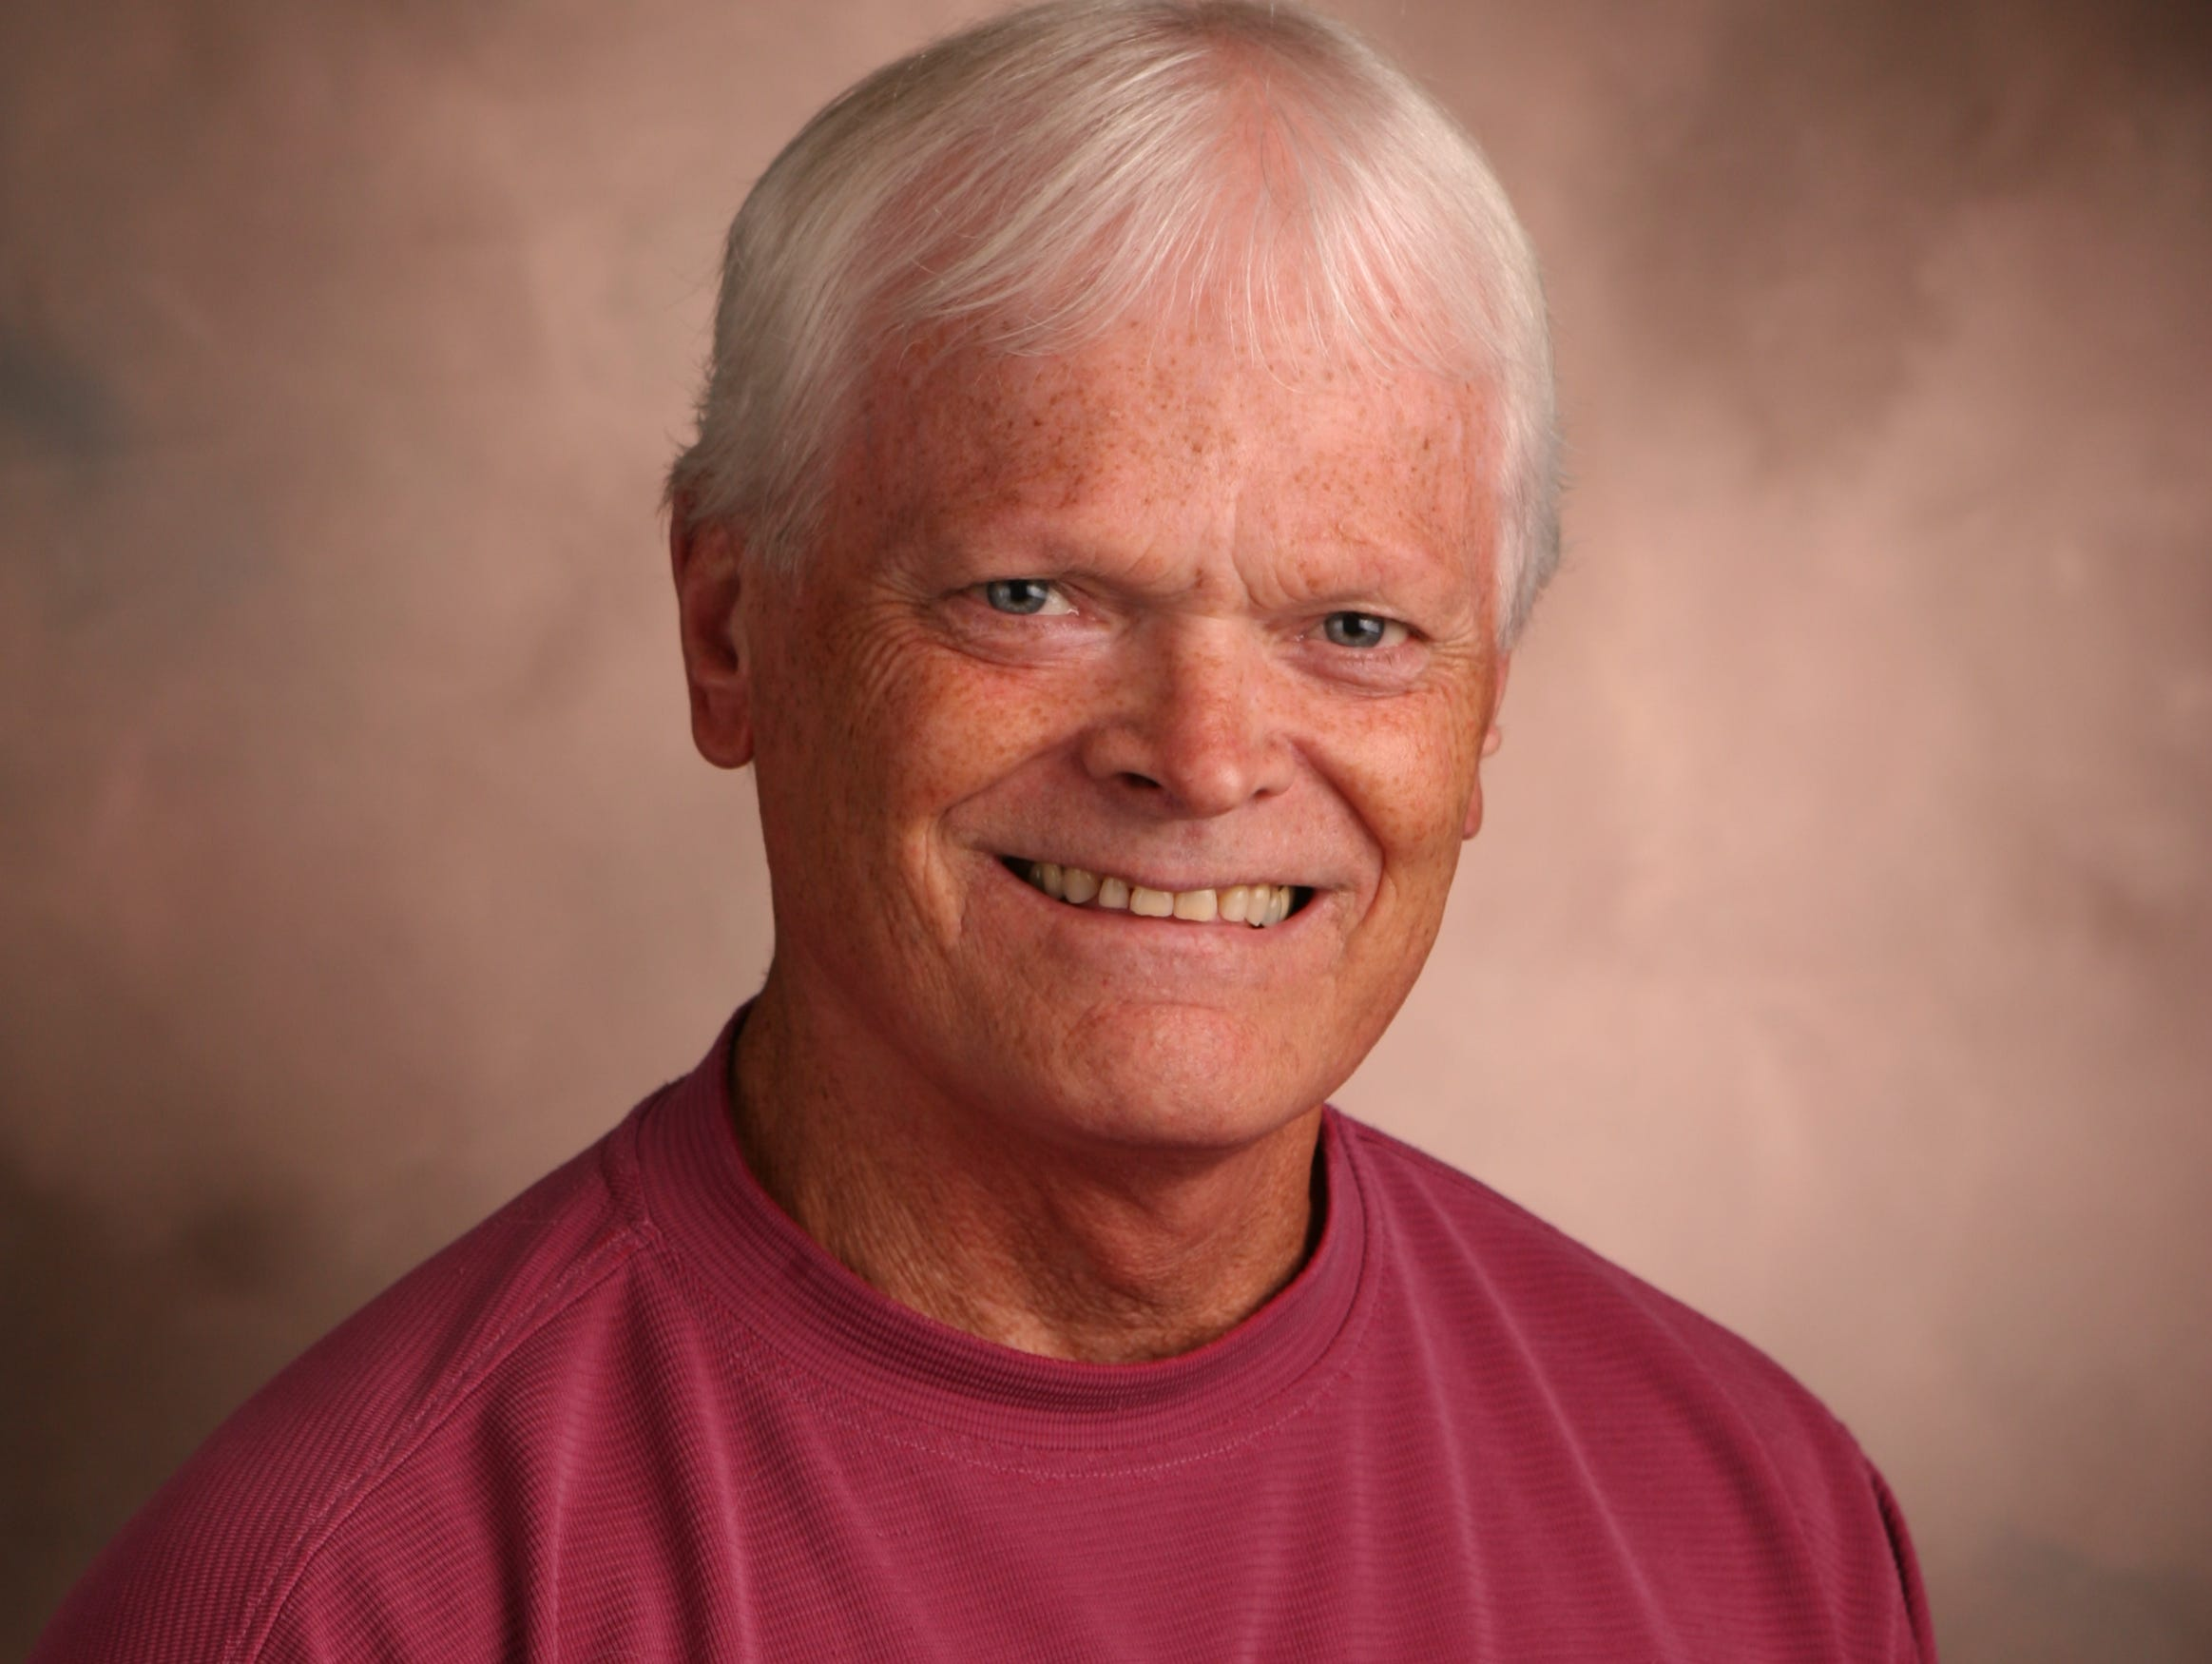 """Longtime Sanford Wellness Center director Cal Hanson is retiring after 30 years of service. The center honored Hanson by renaming it the """"Cal Hanson Performance Center."""""""